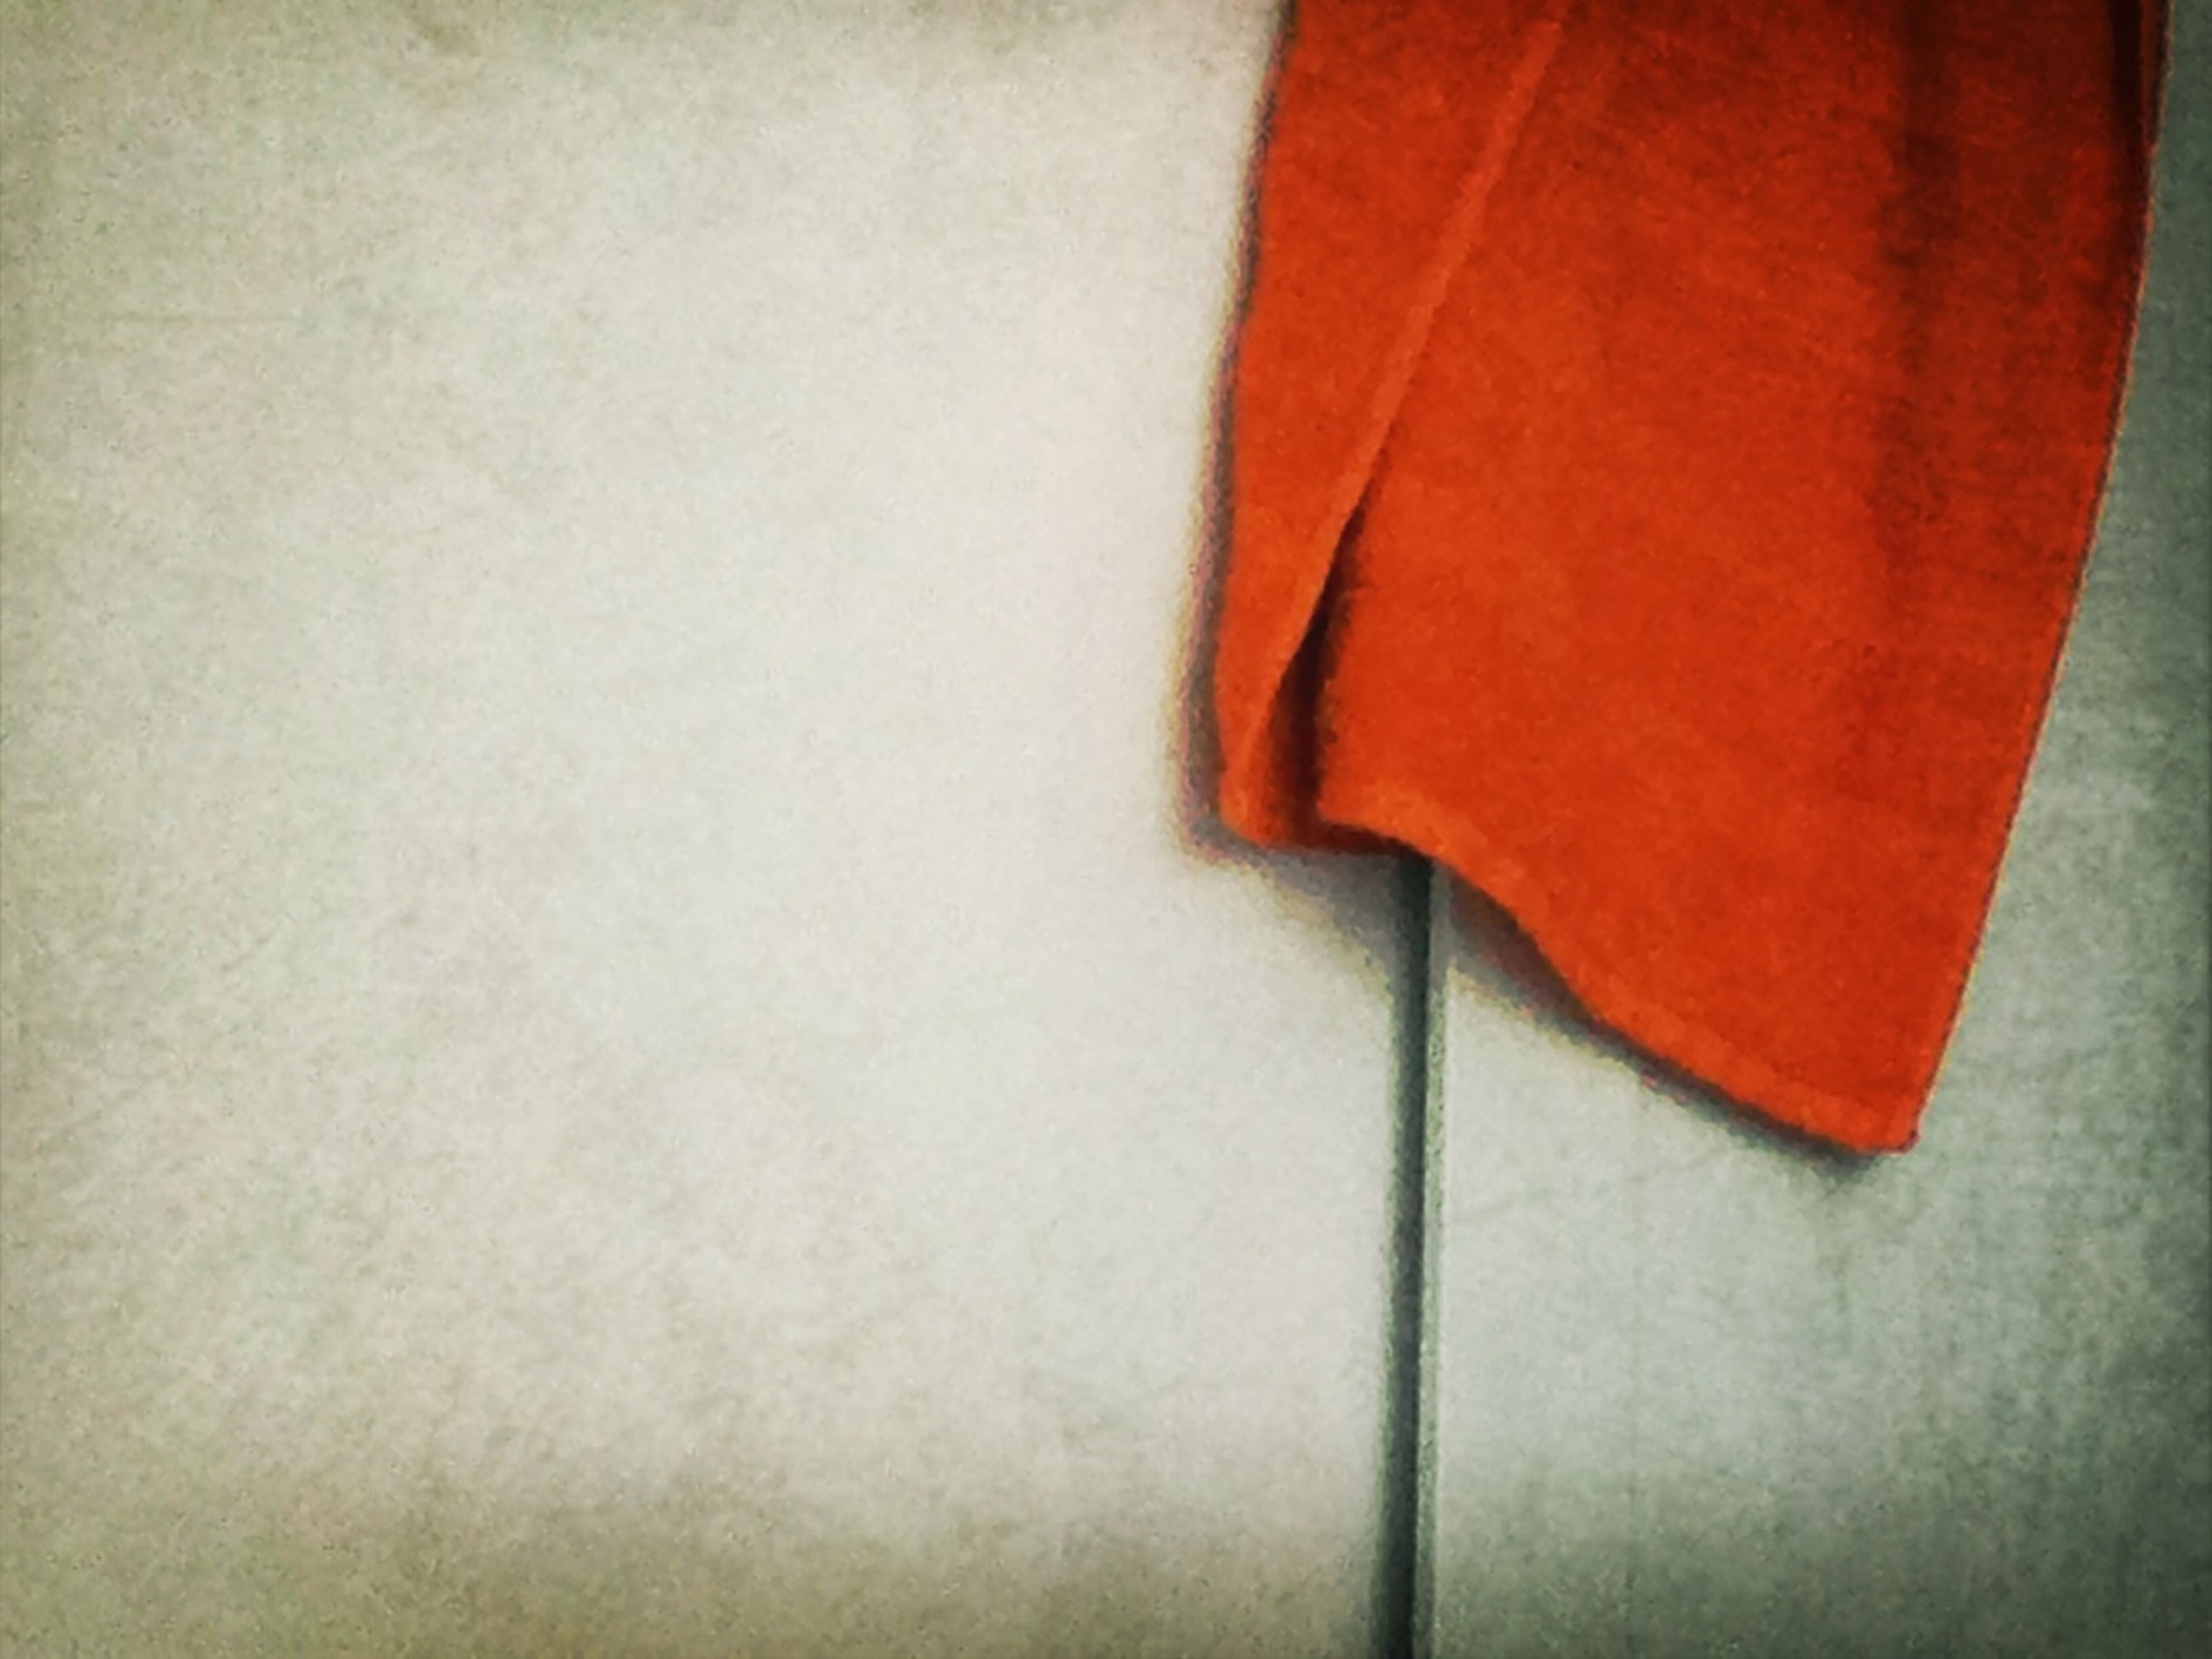 indoors, red, close-up, wall - building feature, white color, orange color, textile, copy space, still life, wall, single object, fabric, textured, part of, no people, pattern, high angle view, simplicity, studio shot, wood - material